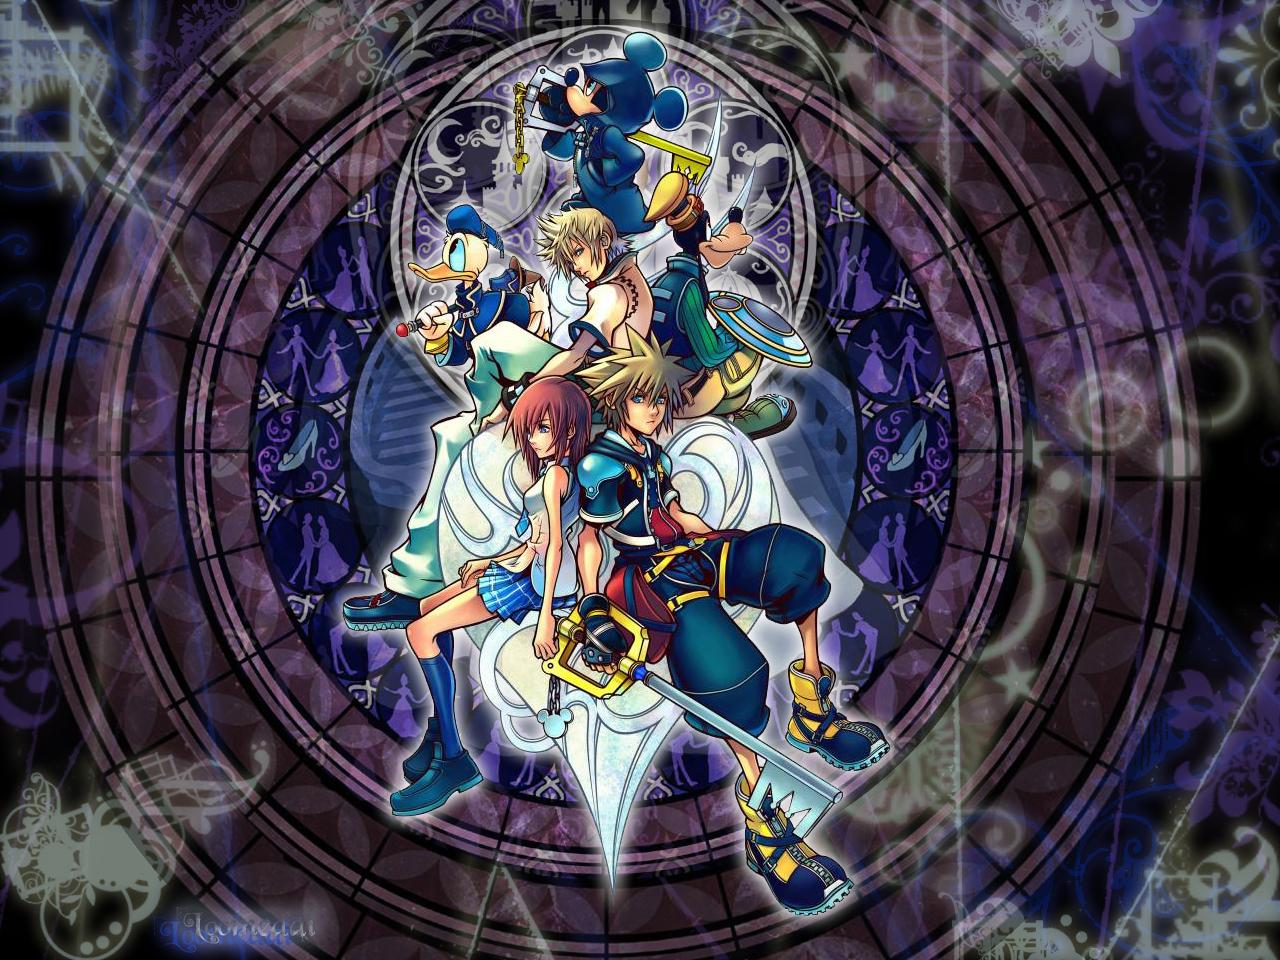 Fondos de Pantalla Wallpapers Fondo wallpaper kingdom hearts hd 1280x960